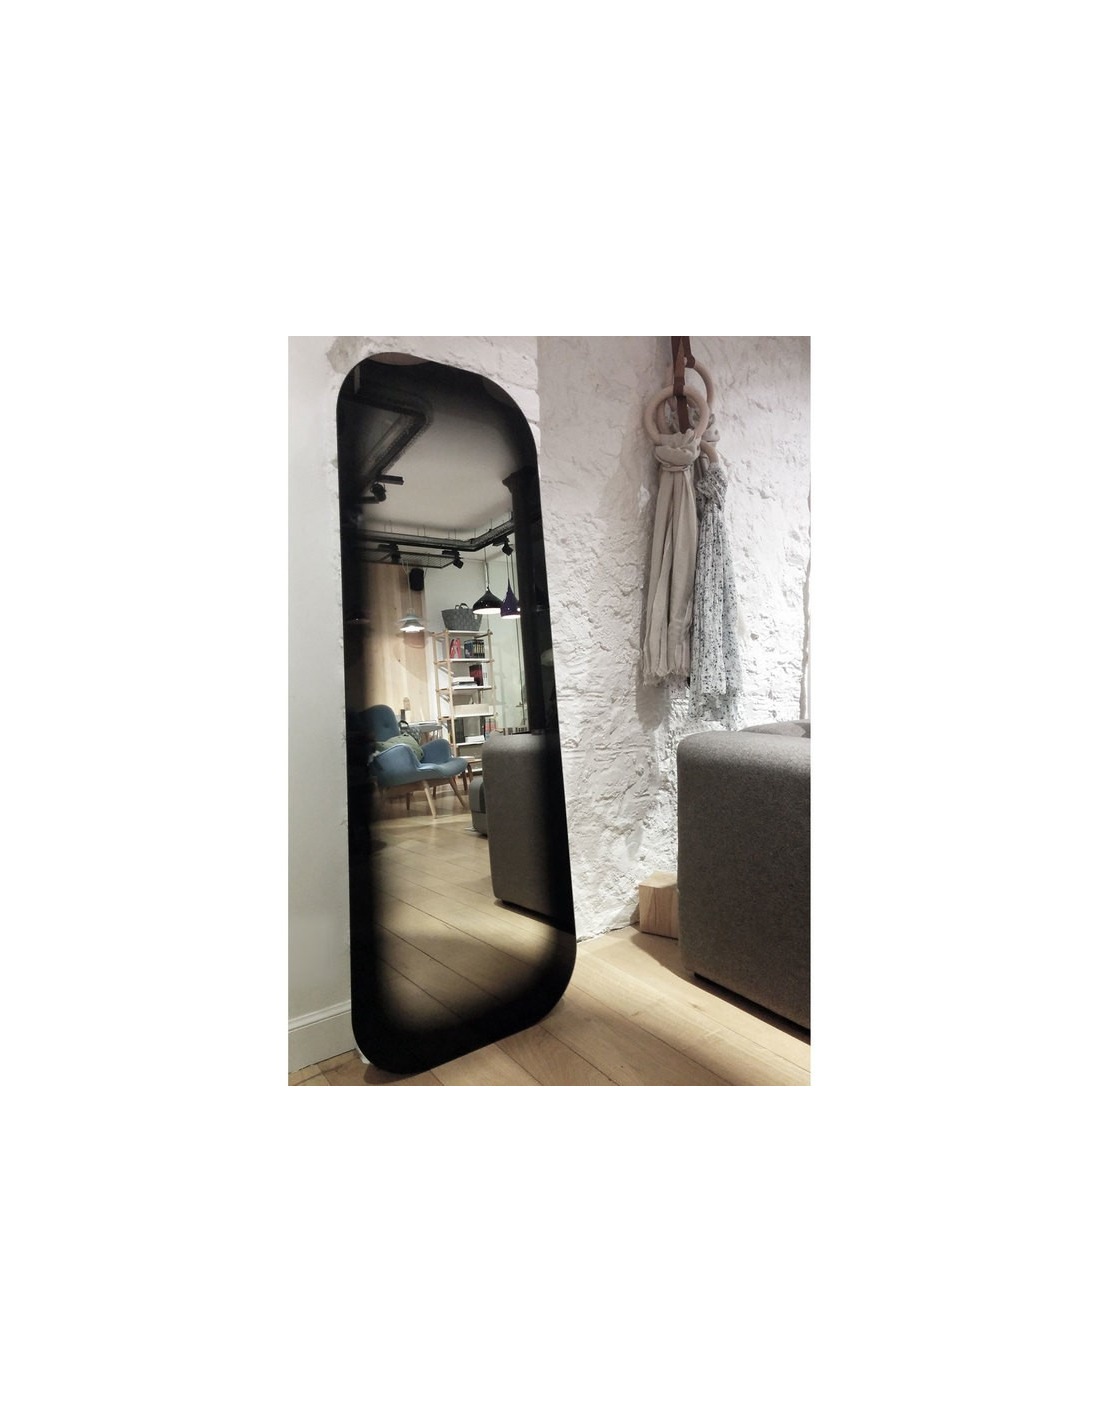 Miroir design fading noir par thomas eurlings otoko for Miroir design noir